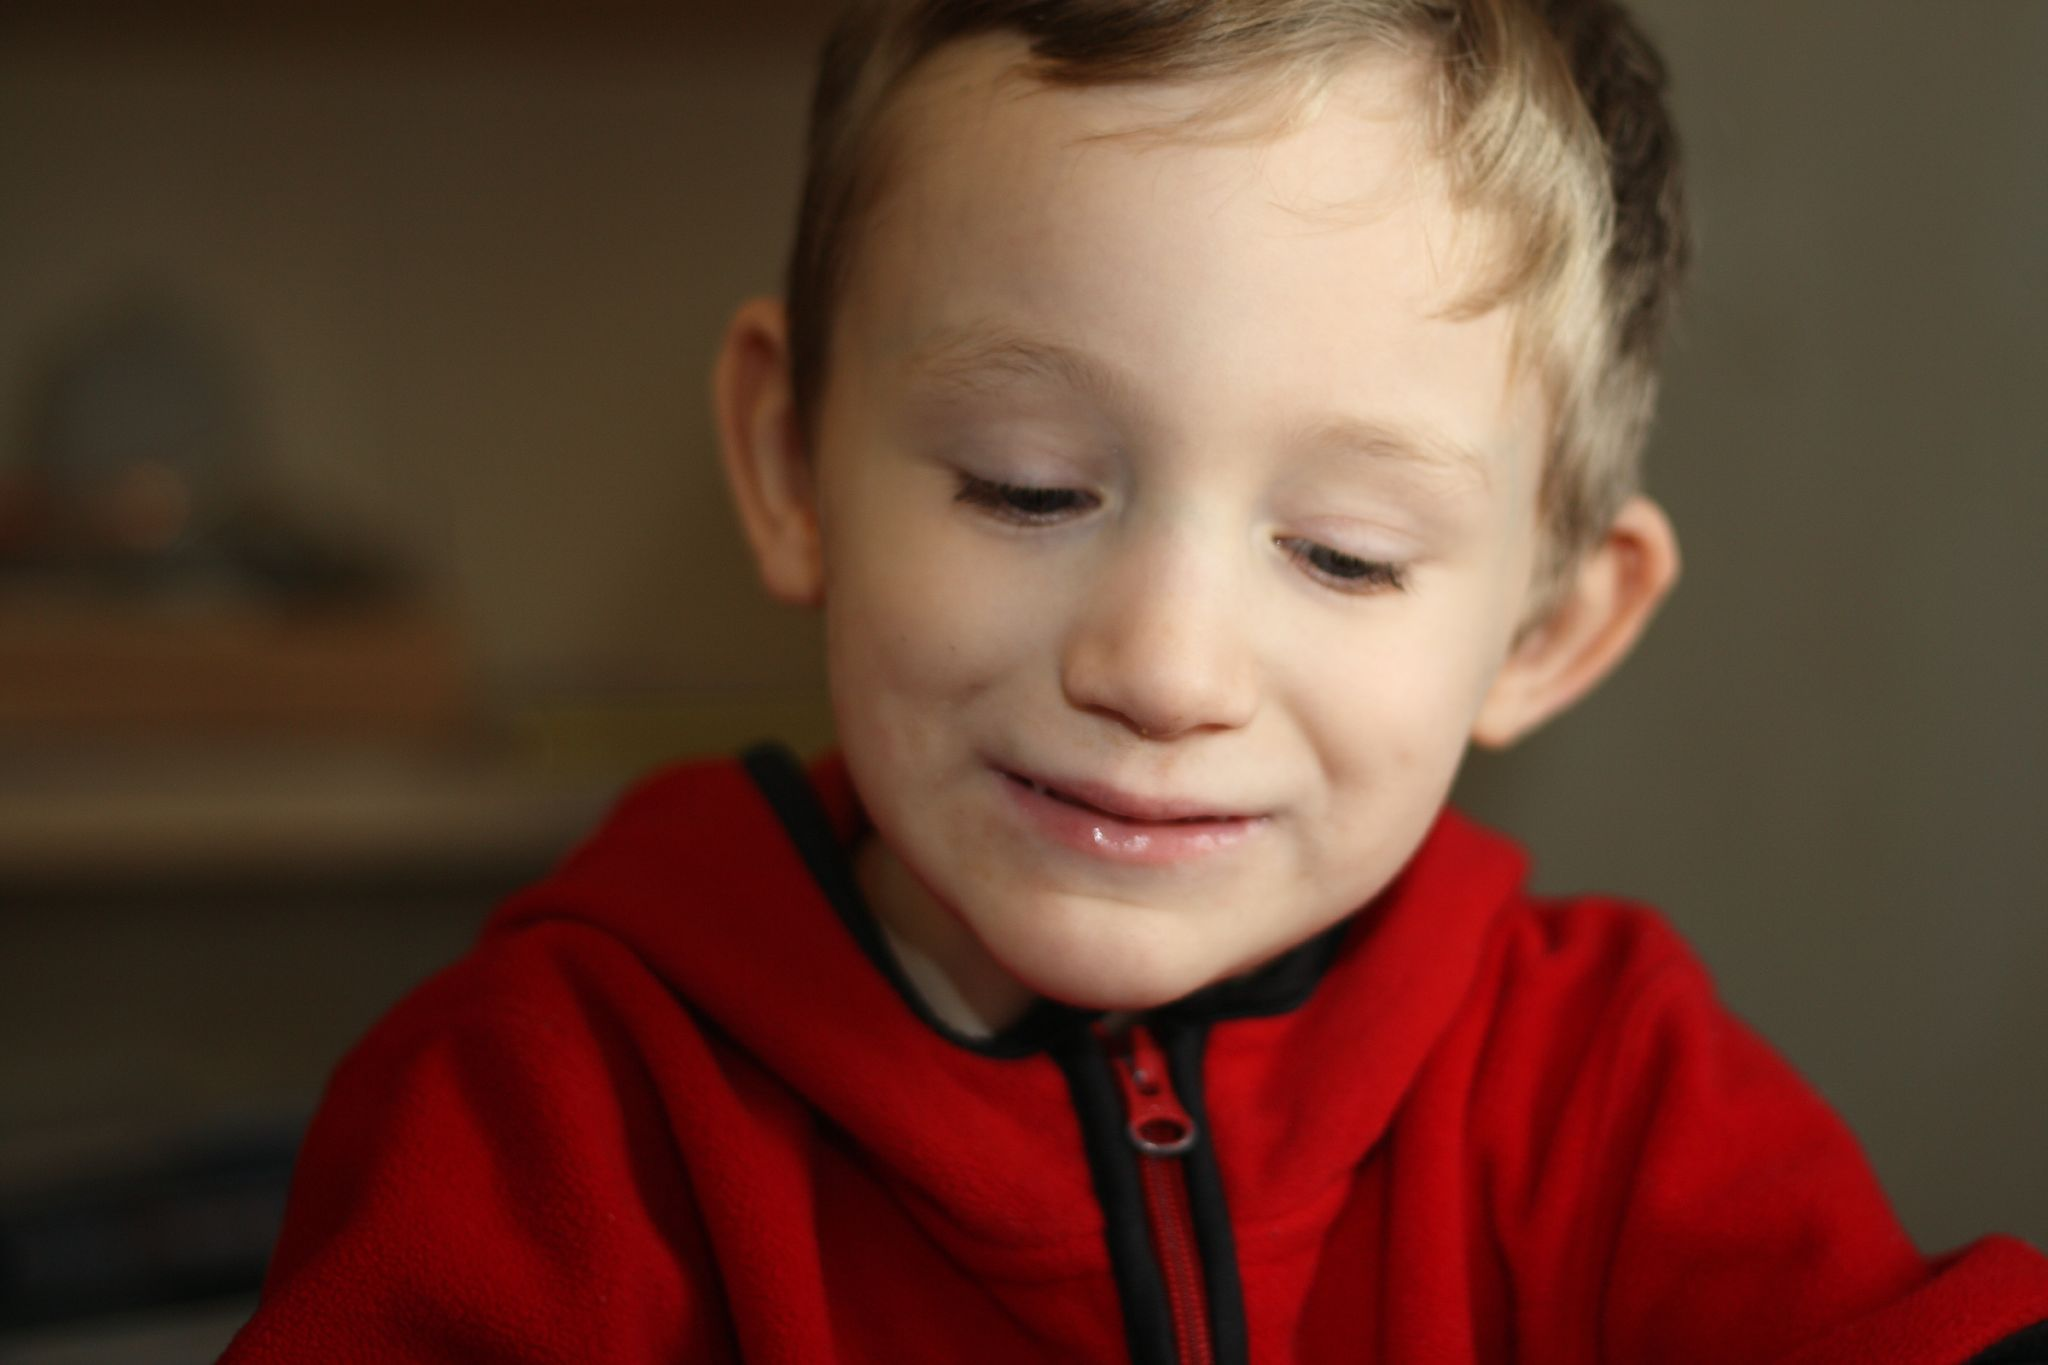 Asperger s Syndrome And Autism Are Biologically Distinct